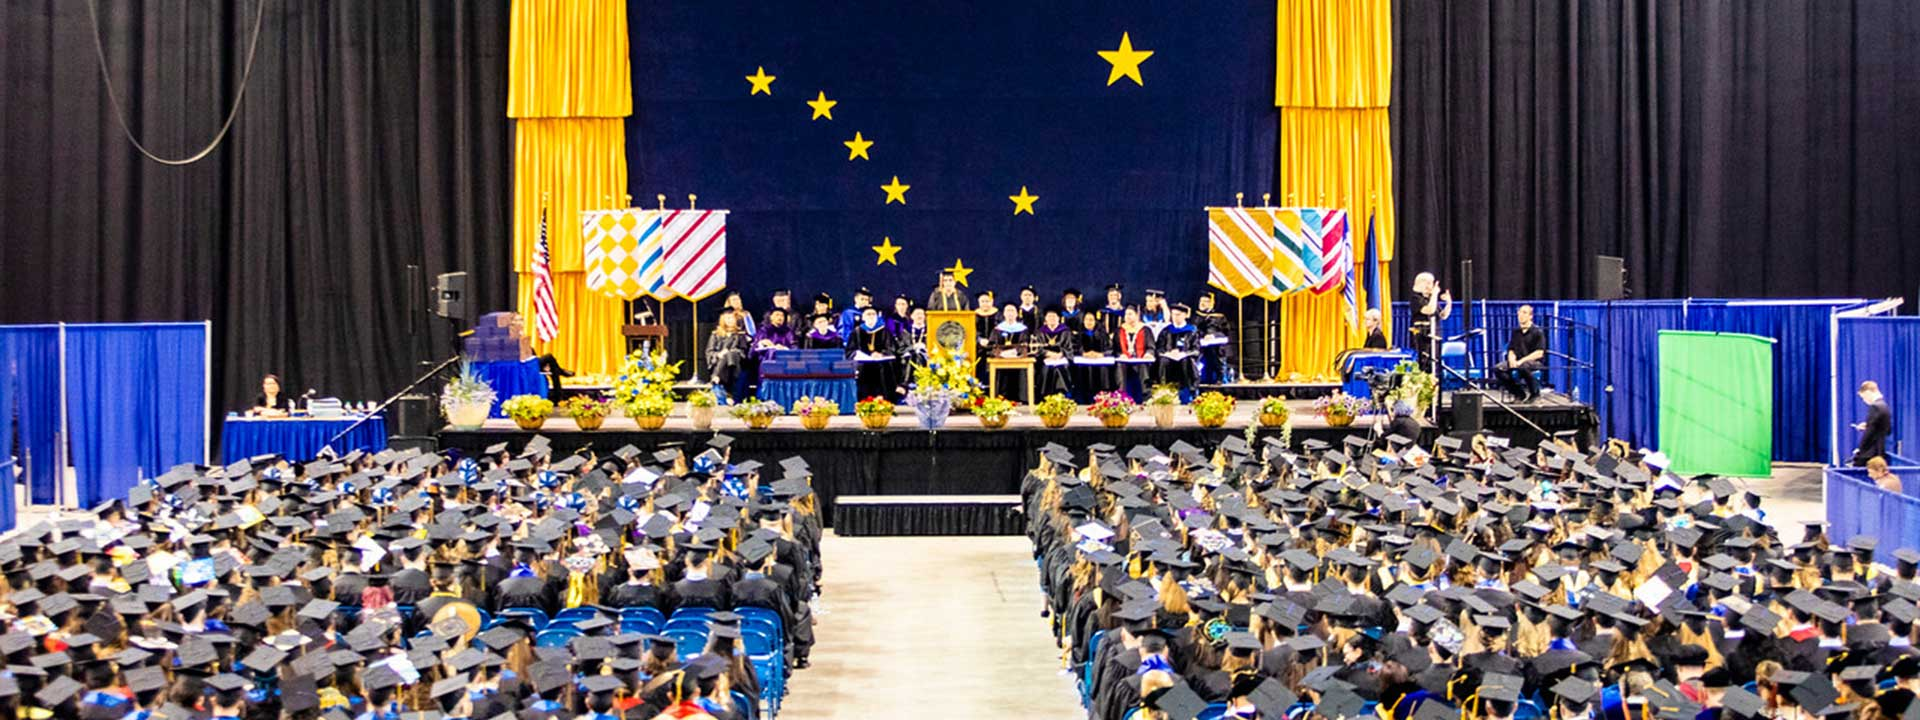 A panoramic view of the 2019 commencement ceremony at the Carlson Center